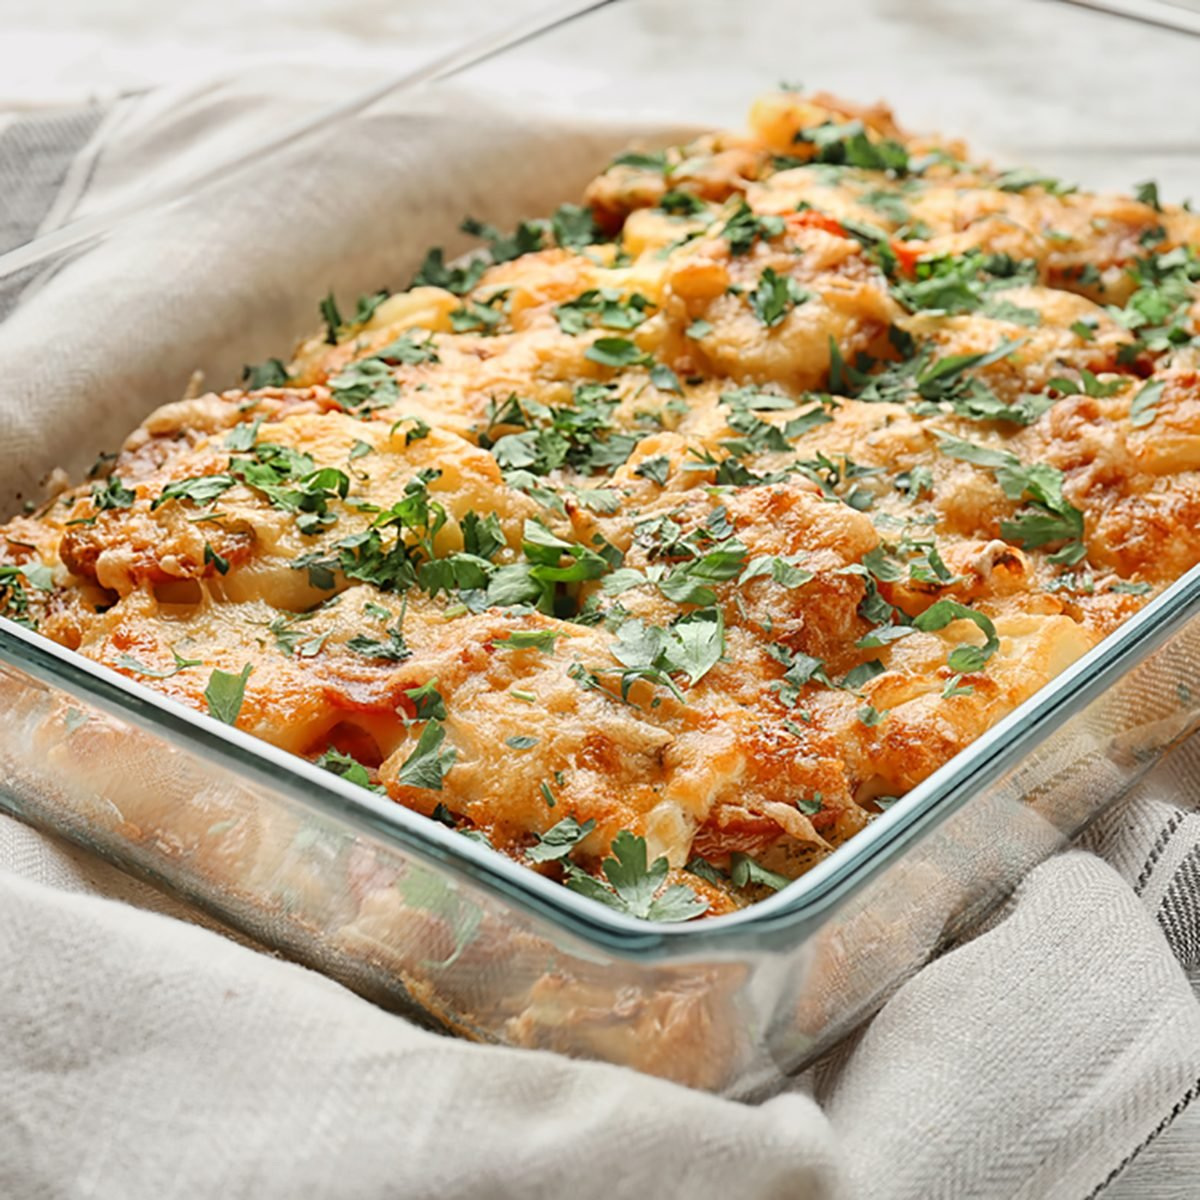 Delicious sausage casserole in baking dish on table; Shutterstock ID 742505116; Job (TFH, TOH, RD, BNB, CWM, CM): Taste of Home